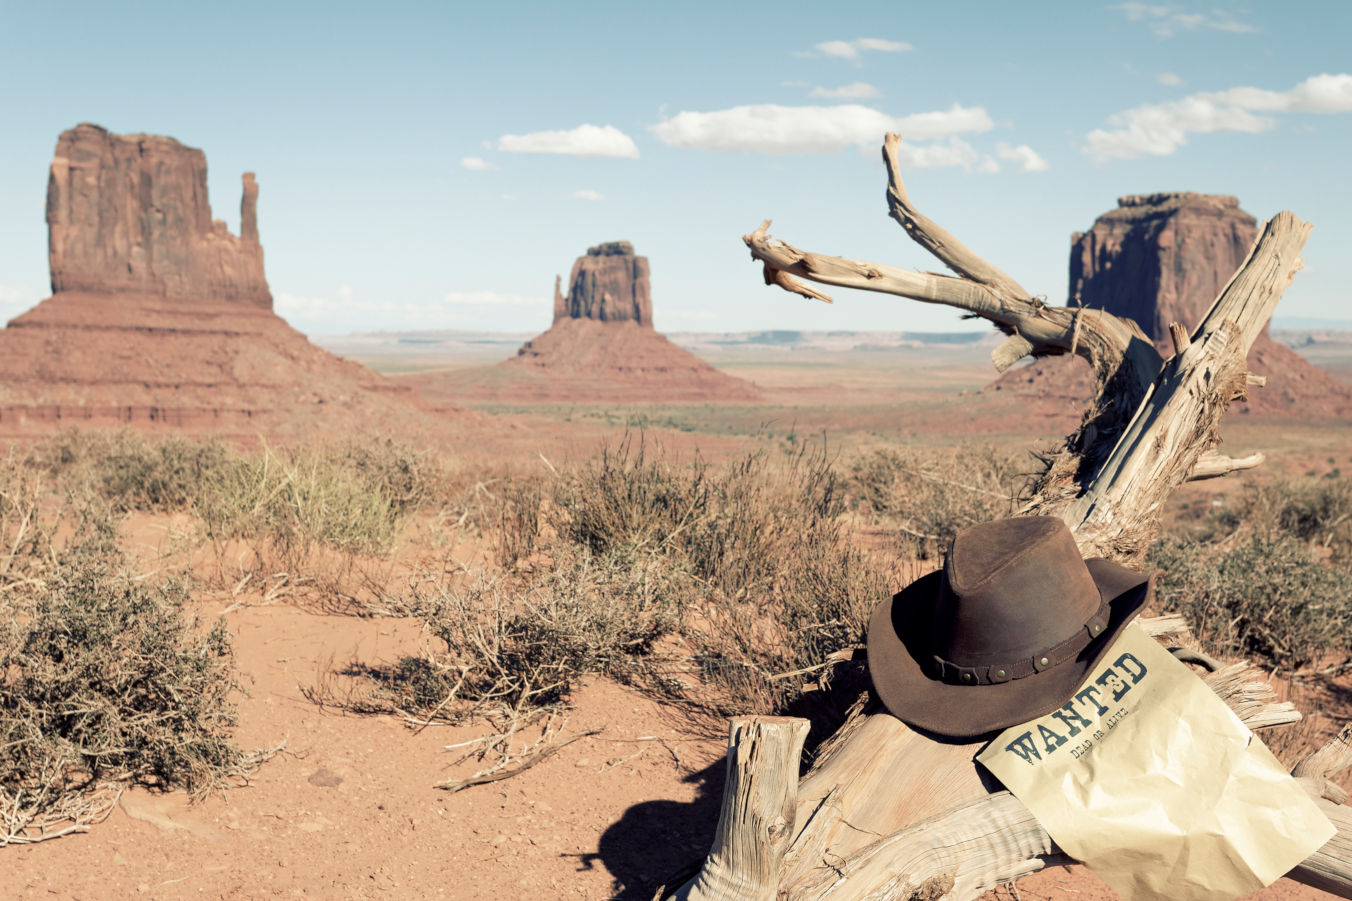 Cowboy hat and Monument Valley